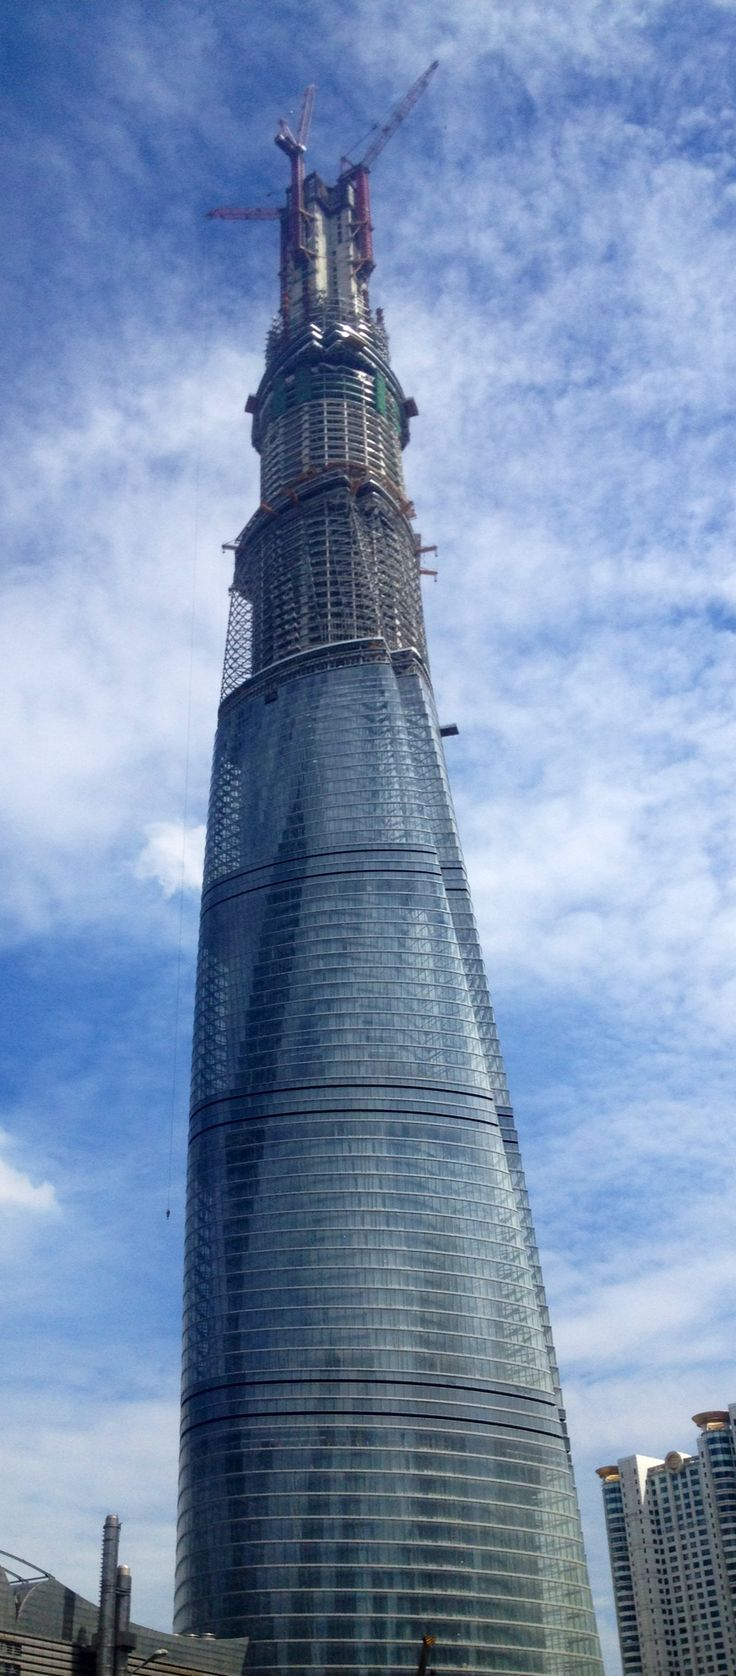 Two Russian Climbers Released An Unbelievable Video Of Them Climbing The Worlds Second Tallest Building Shanghai Tower Without Safety Gear